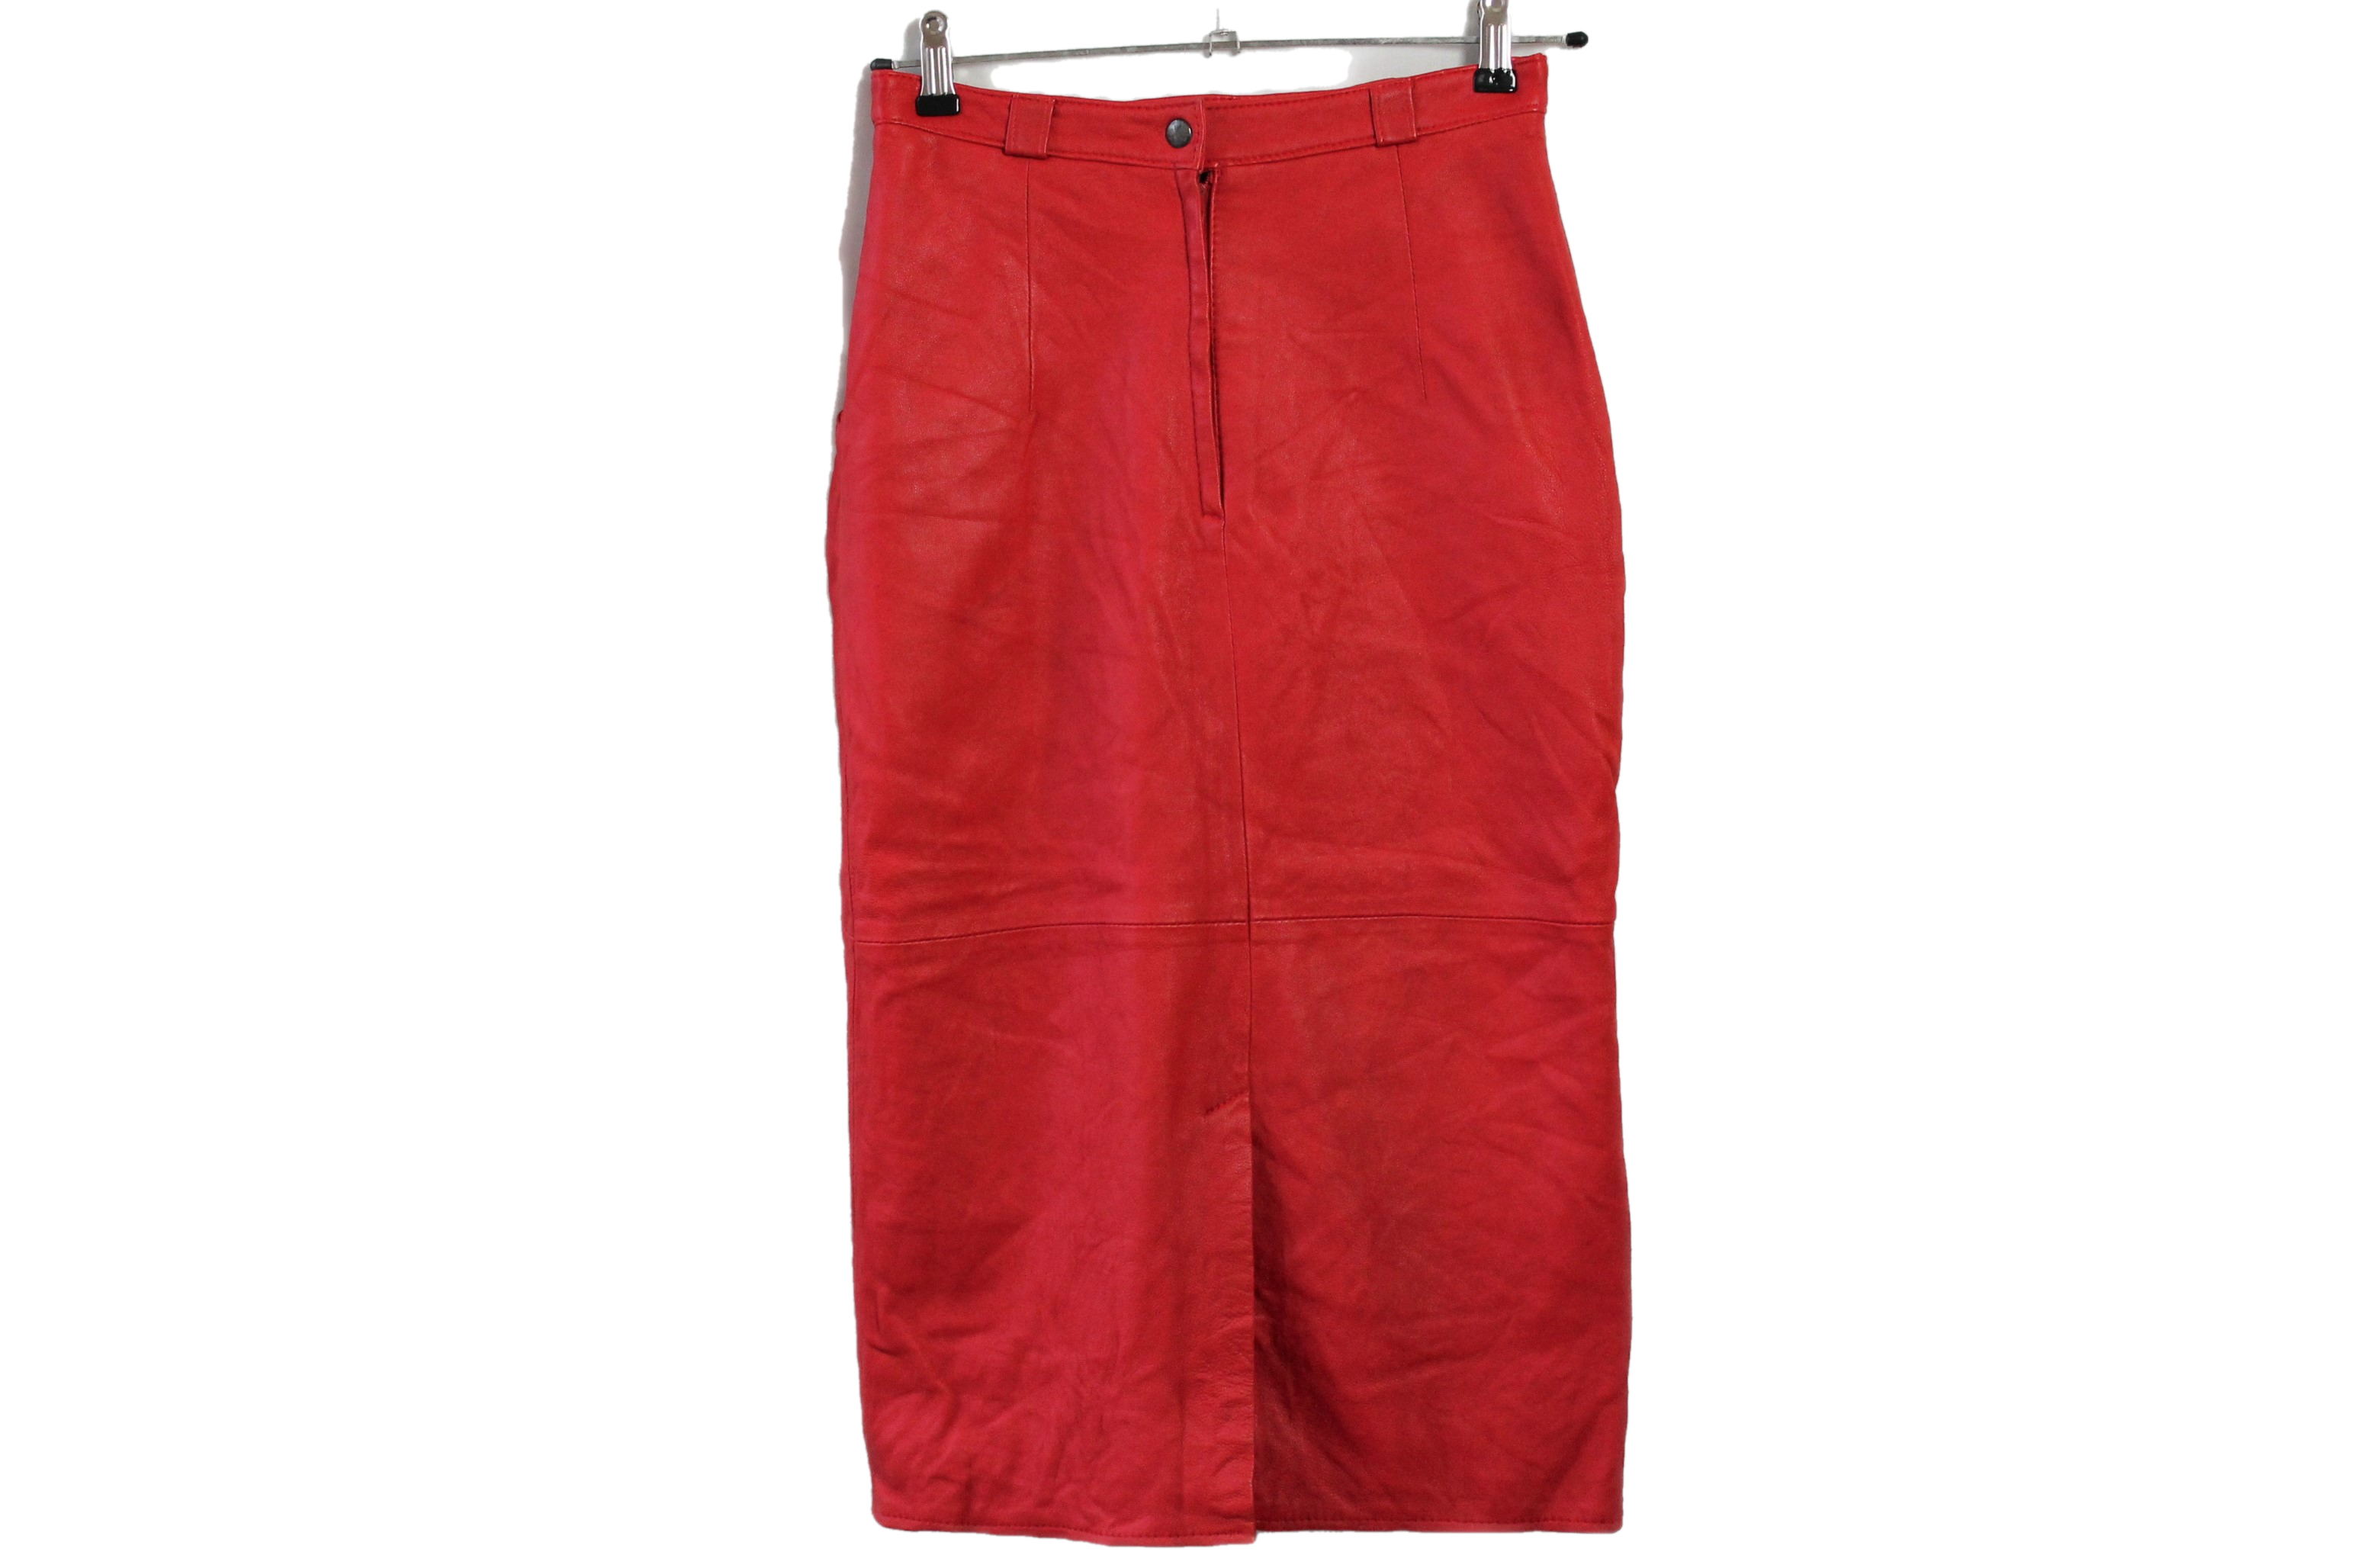 Red leather size S